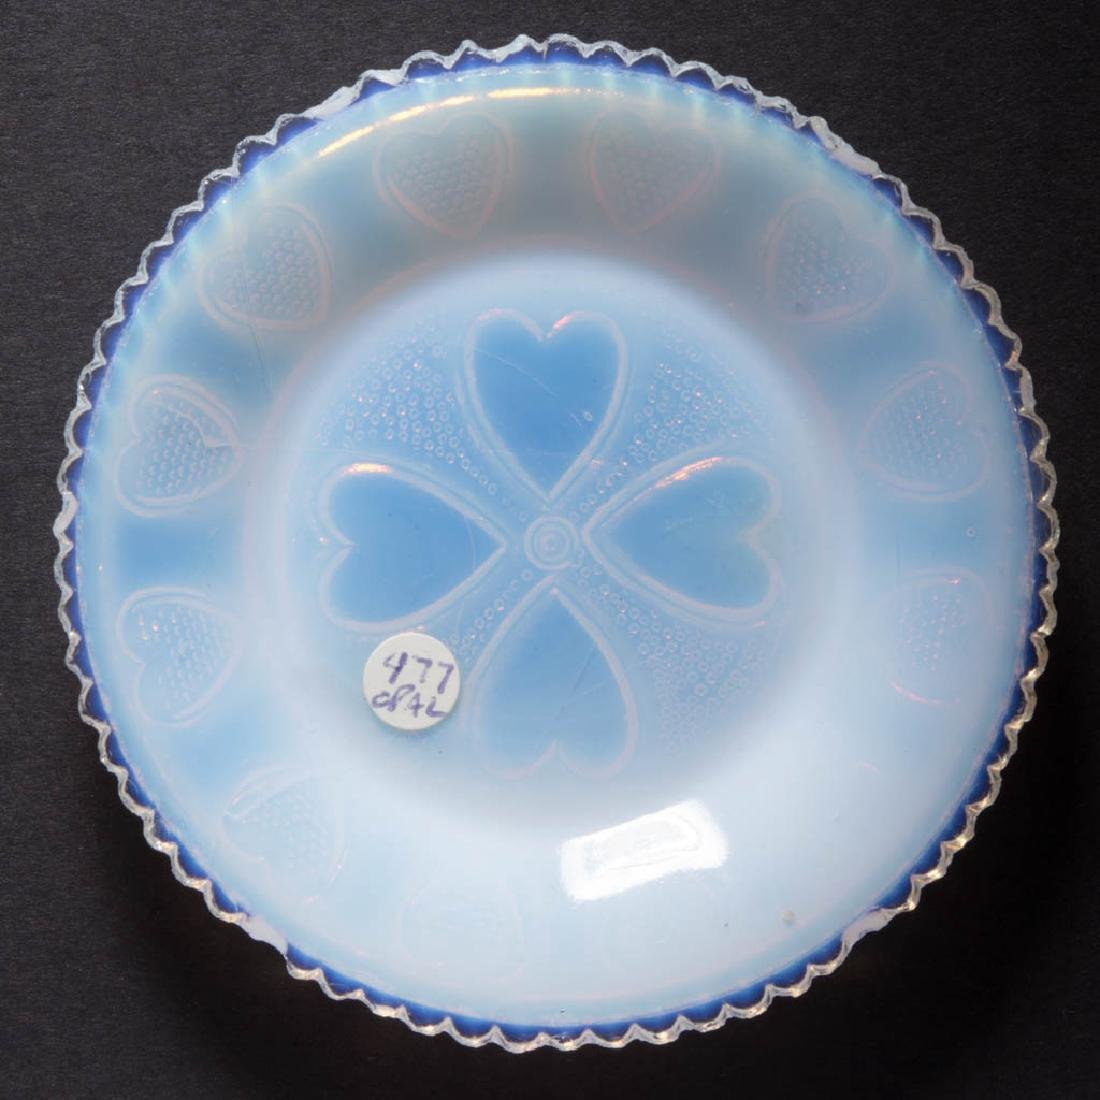 LEE/ROSE NO. 477 CUP PLATE